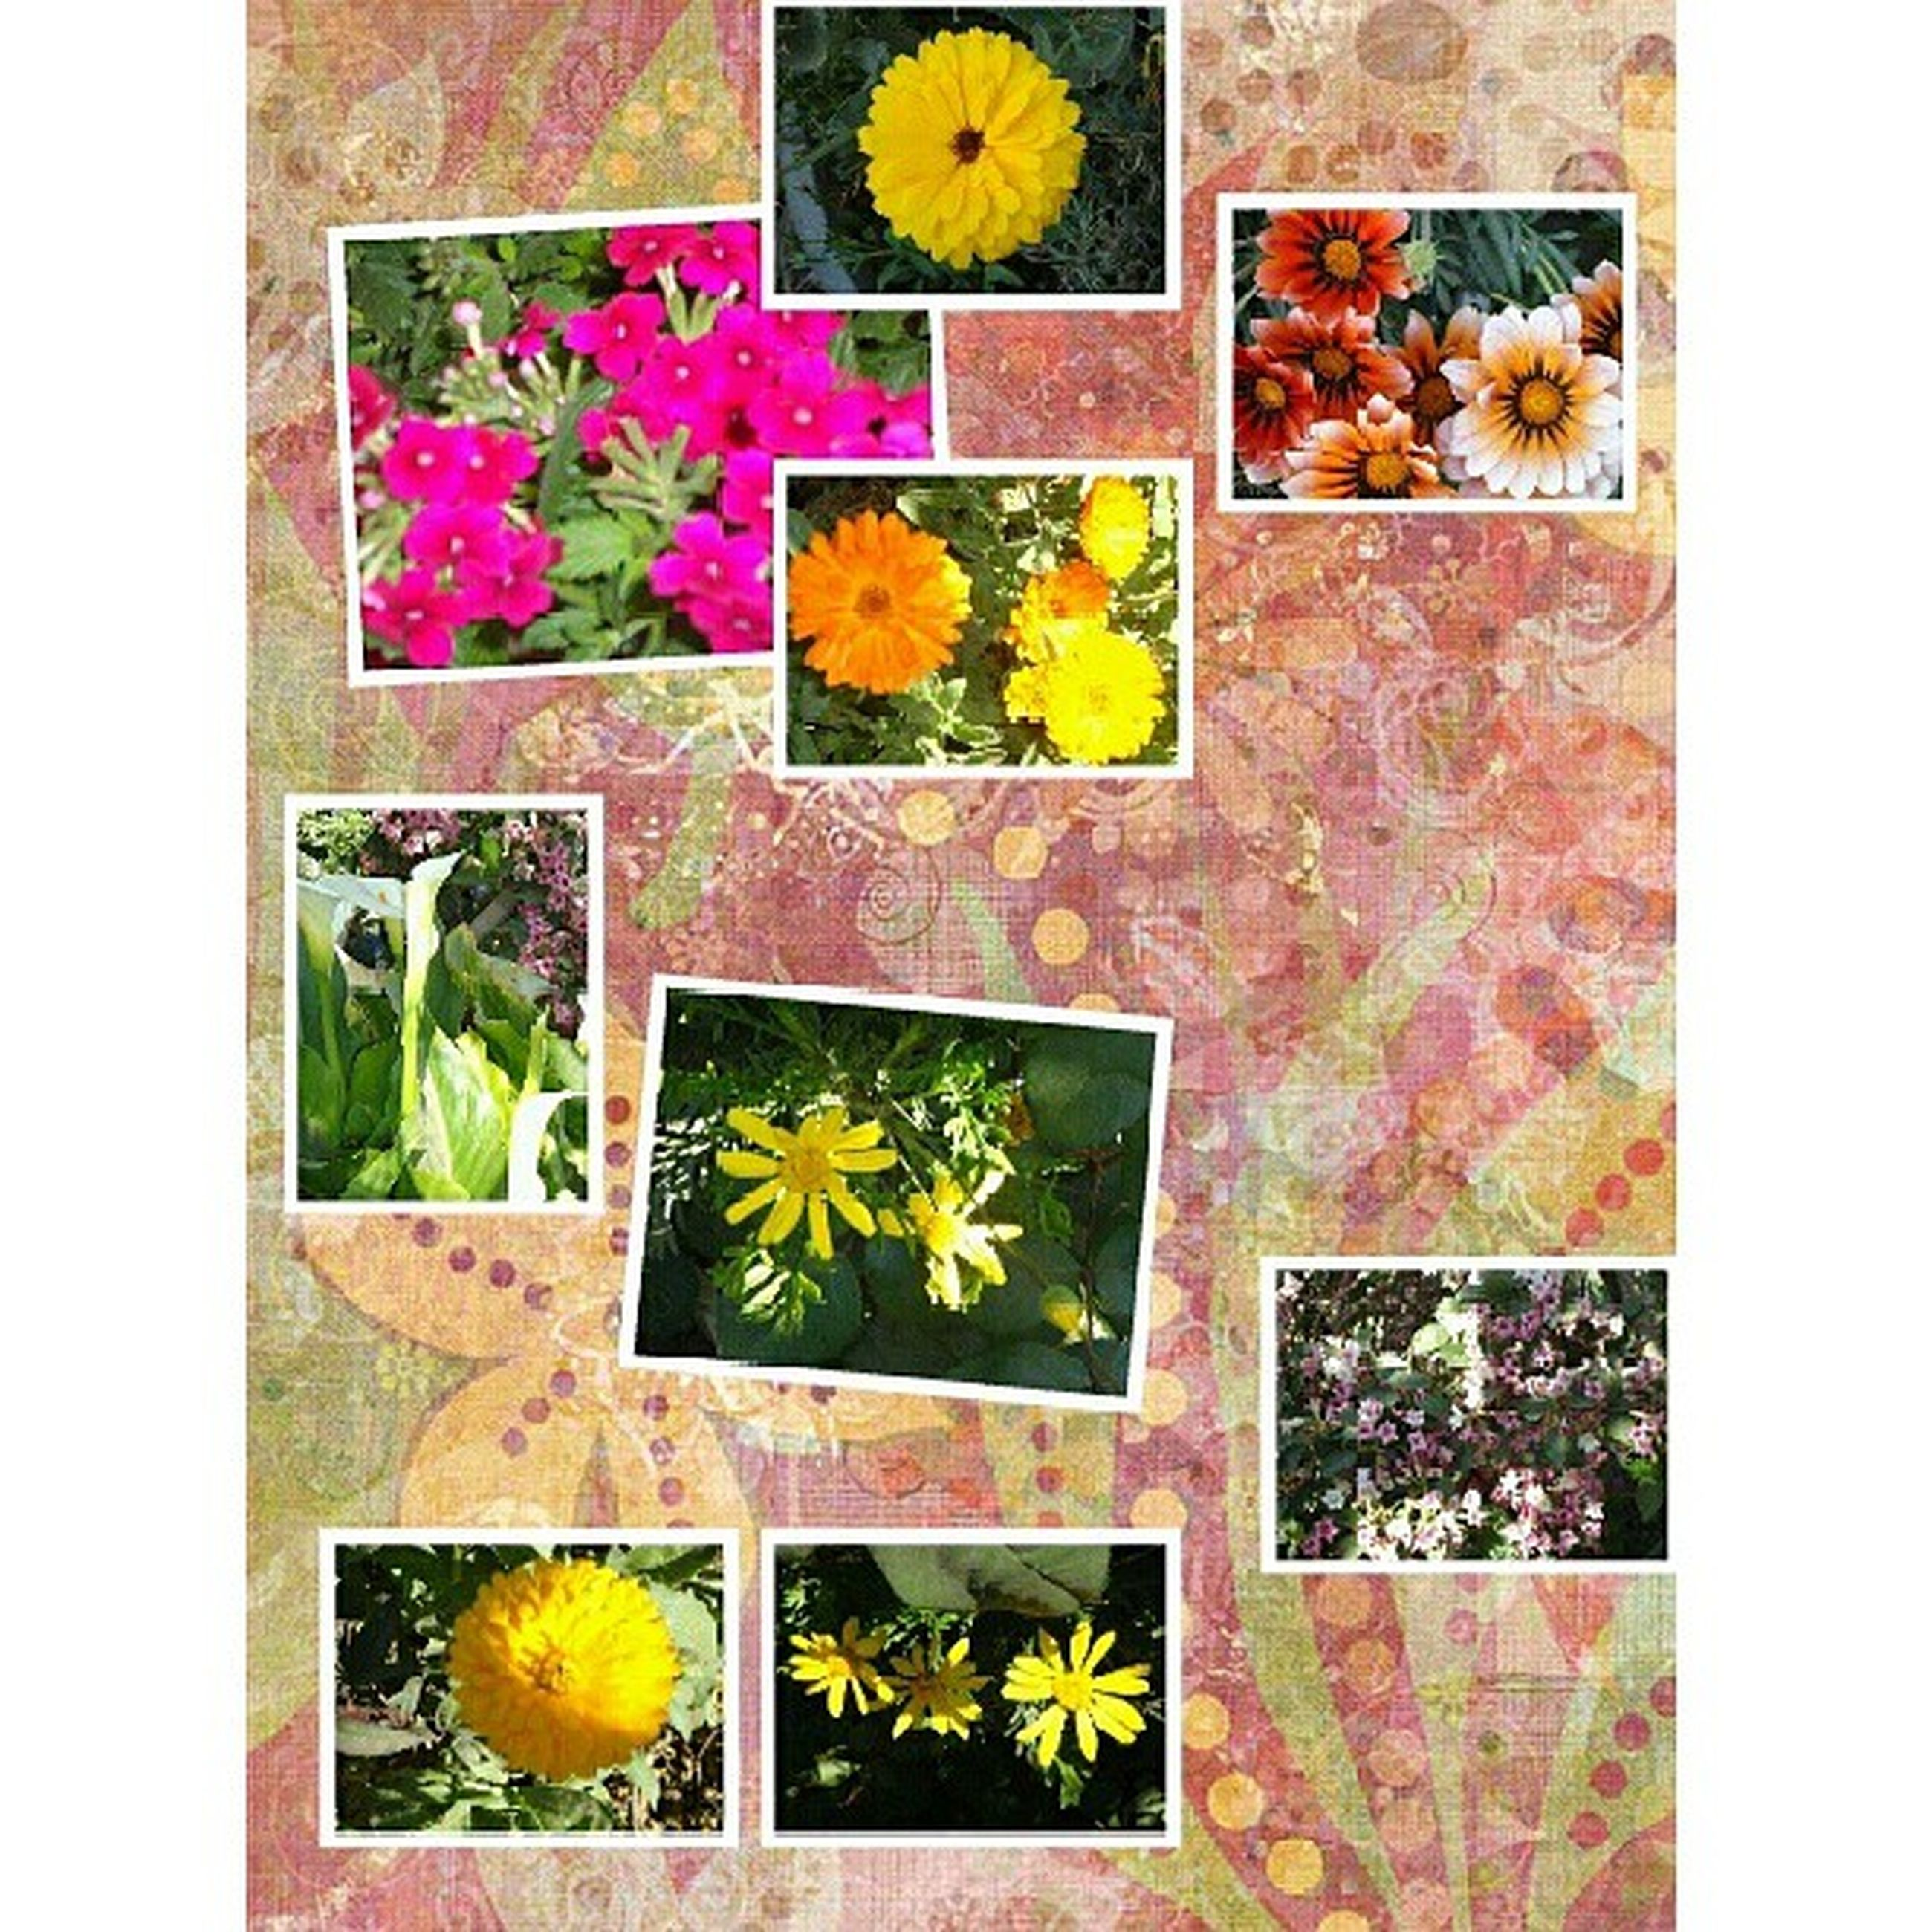 yellow, flower, transfer print, multi colored, wall - building feature, auto post production filter, full frame, art and craft, creativity, art, plant, wall, fragility, growth, leaf, backgrounds, vibrant color, nature, day, no people